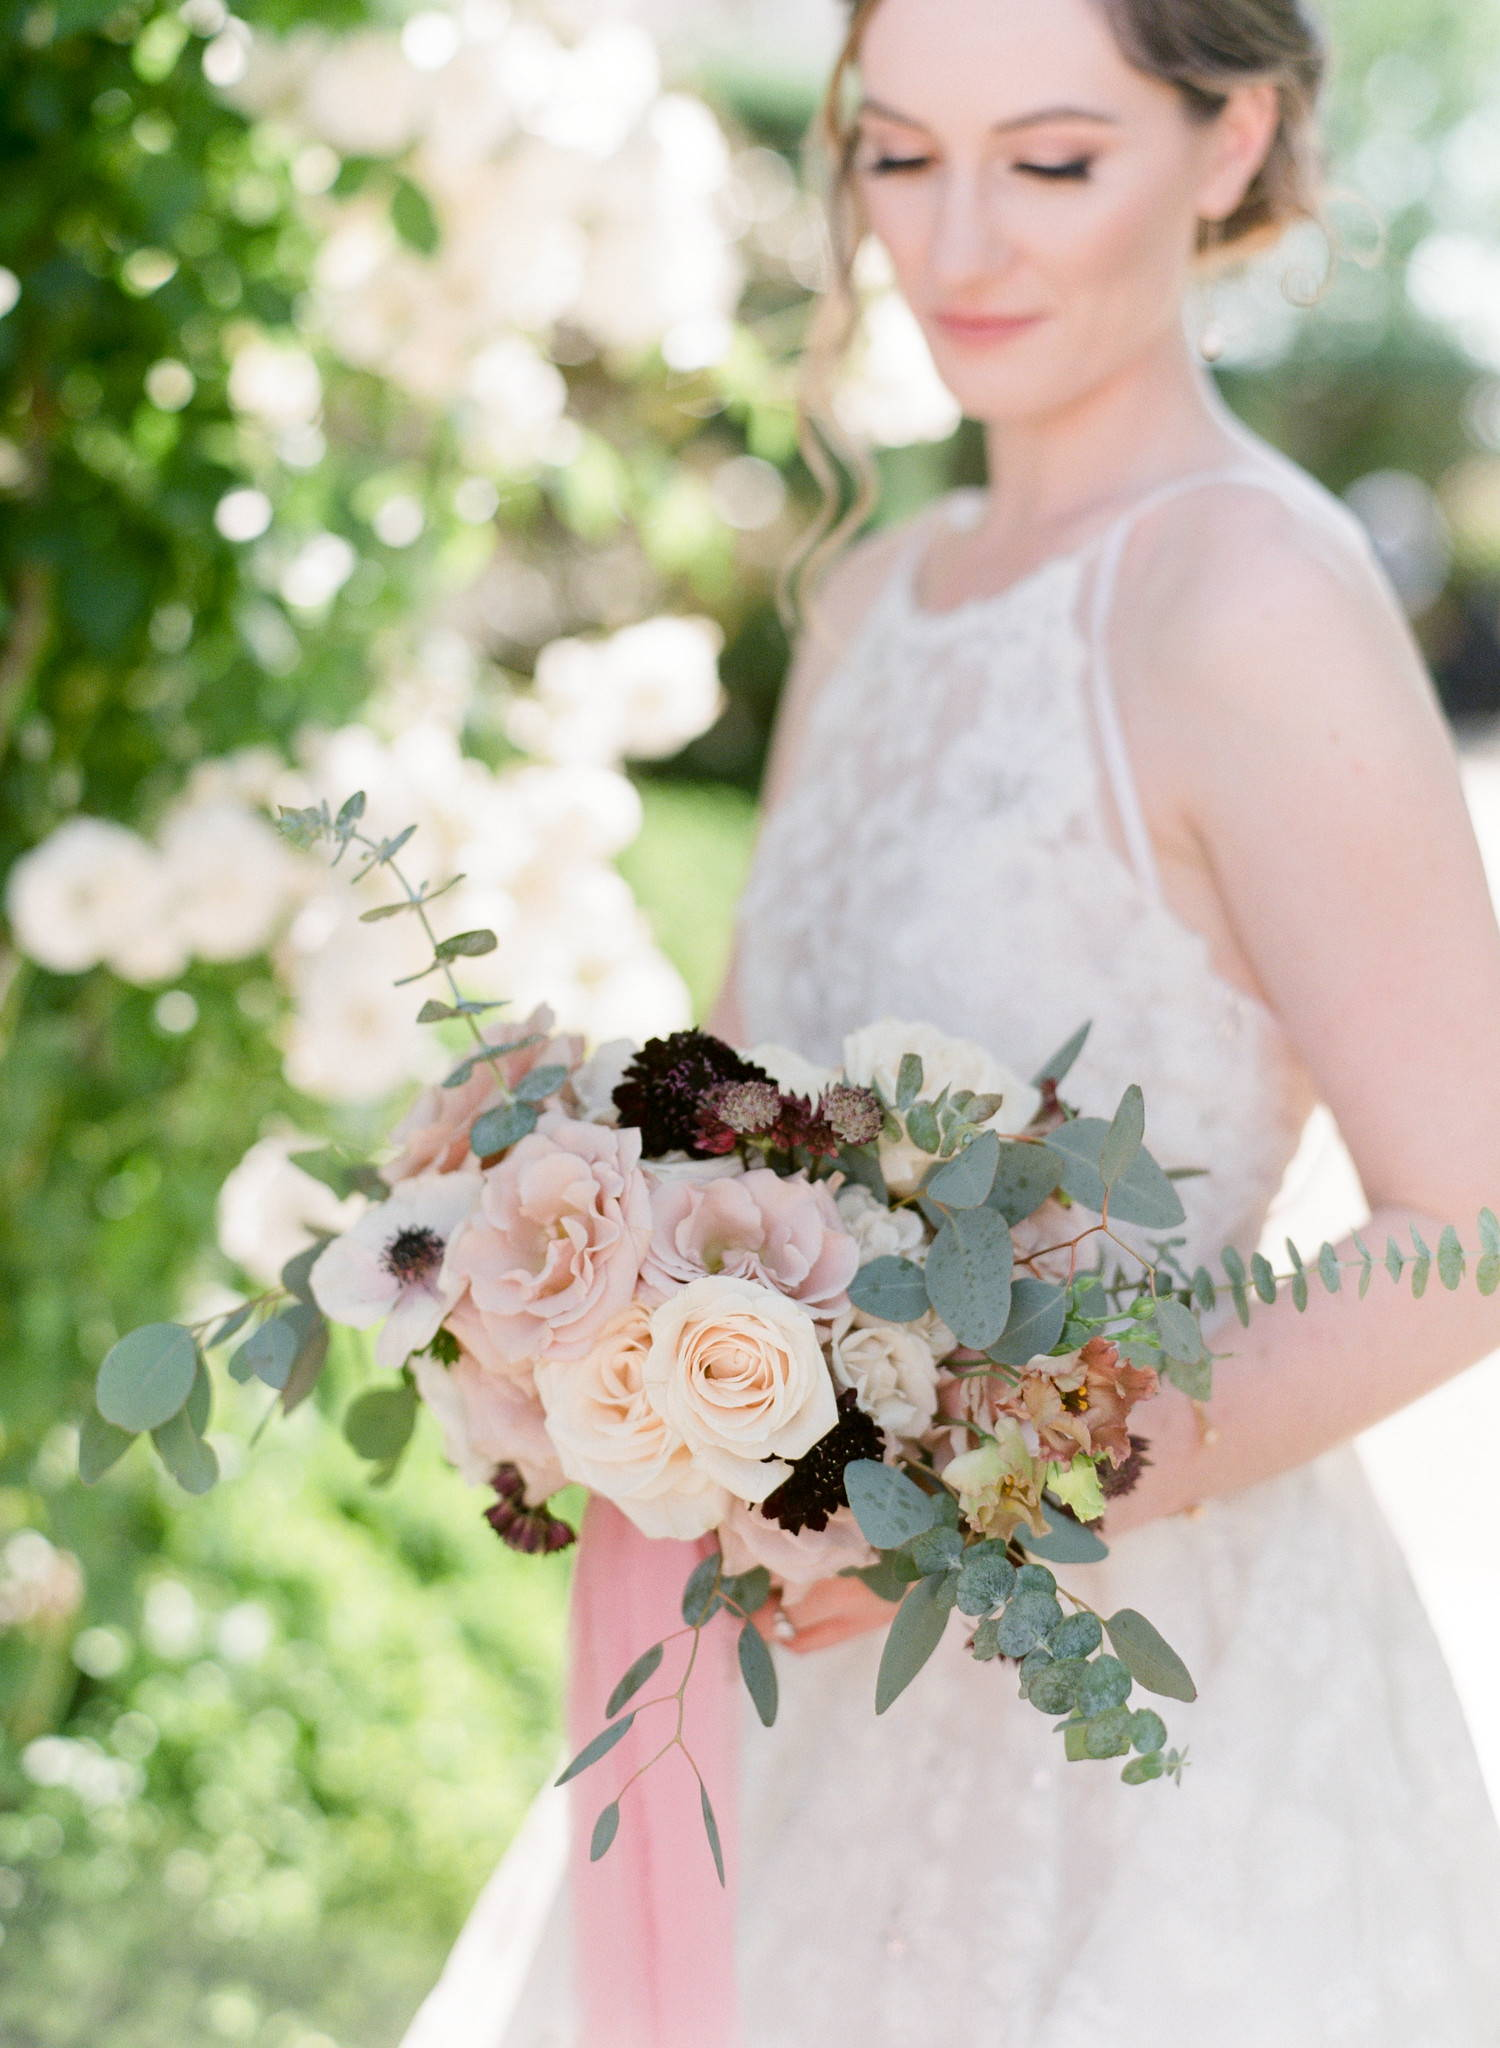 DIY BOUQUET:  Quicksand and Vendella Rose, Burgundy Astrantia, Anemone, Scabiosa